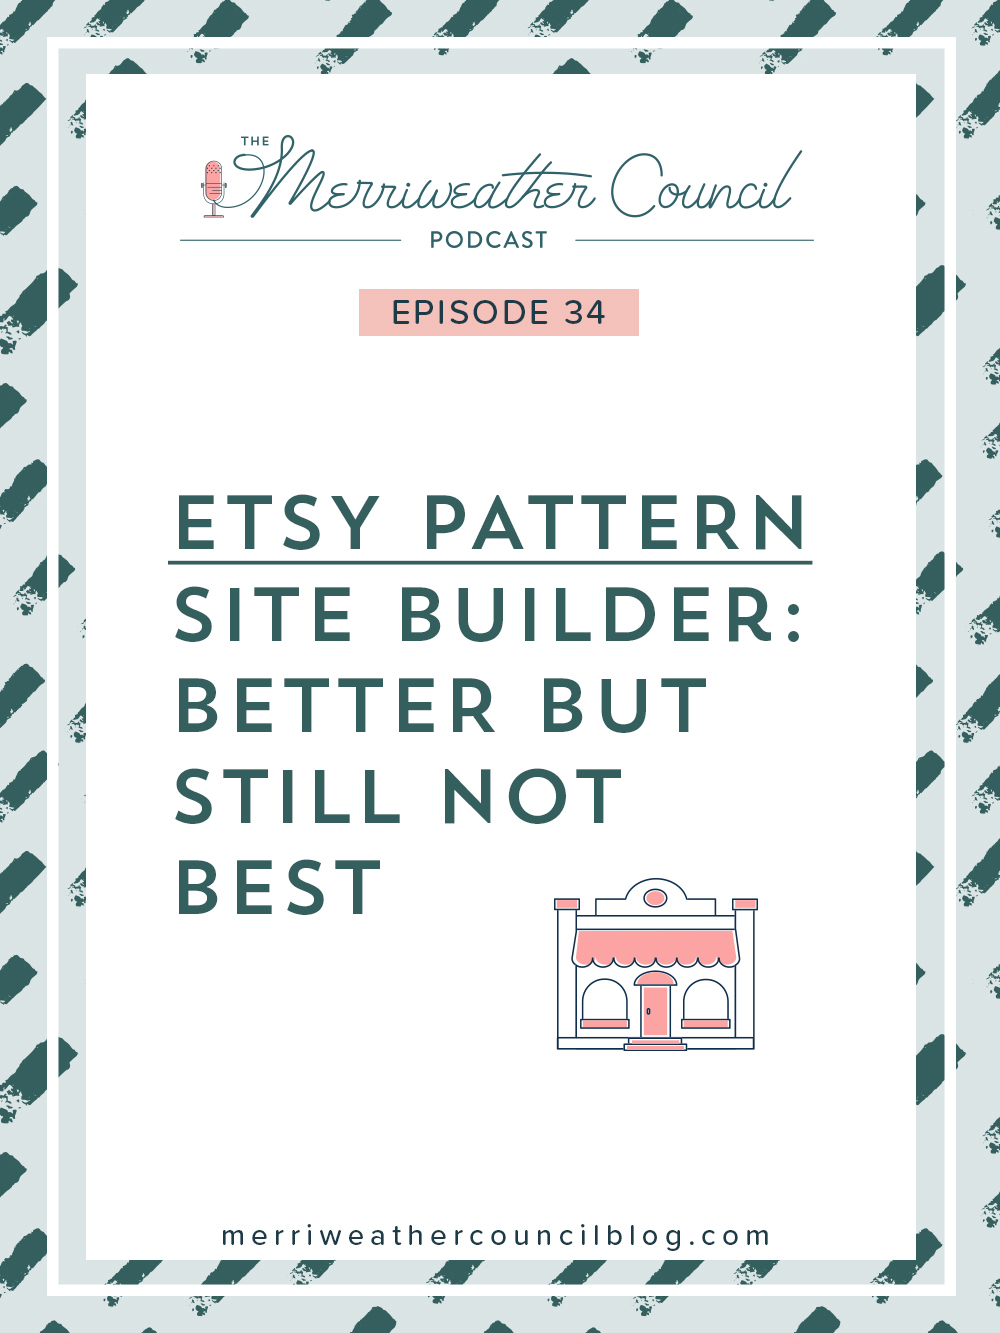 Episode 34: Etsy Pattern - Better But Still Not Best  | The Merriweather Council Podcast